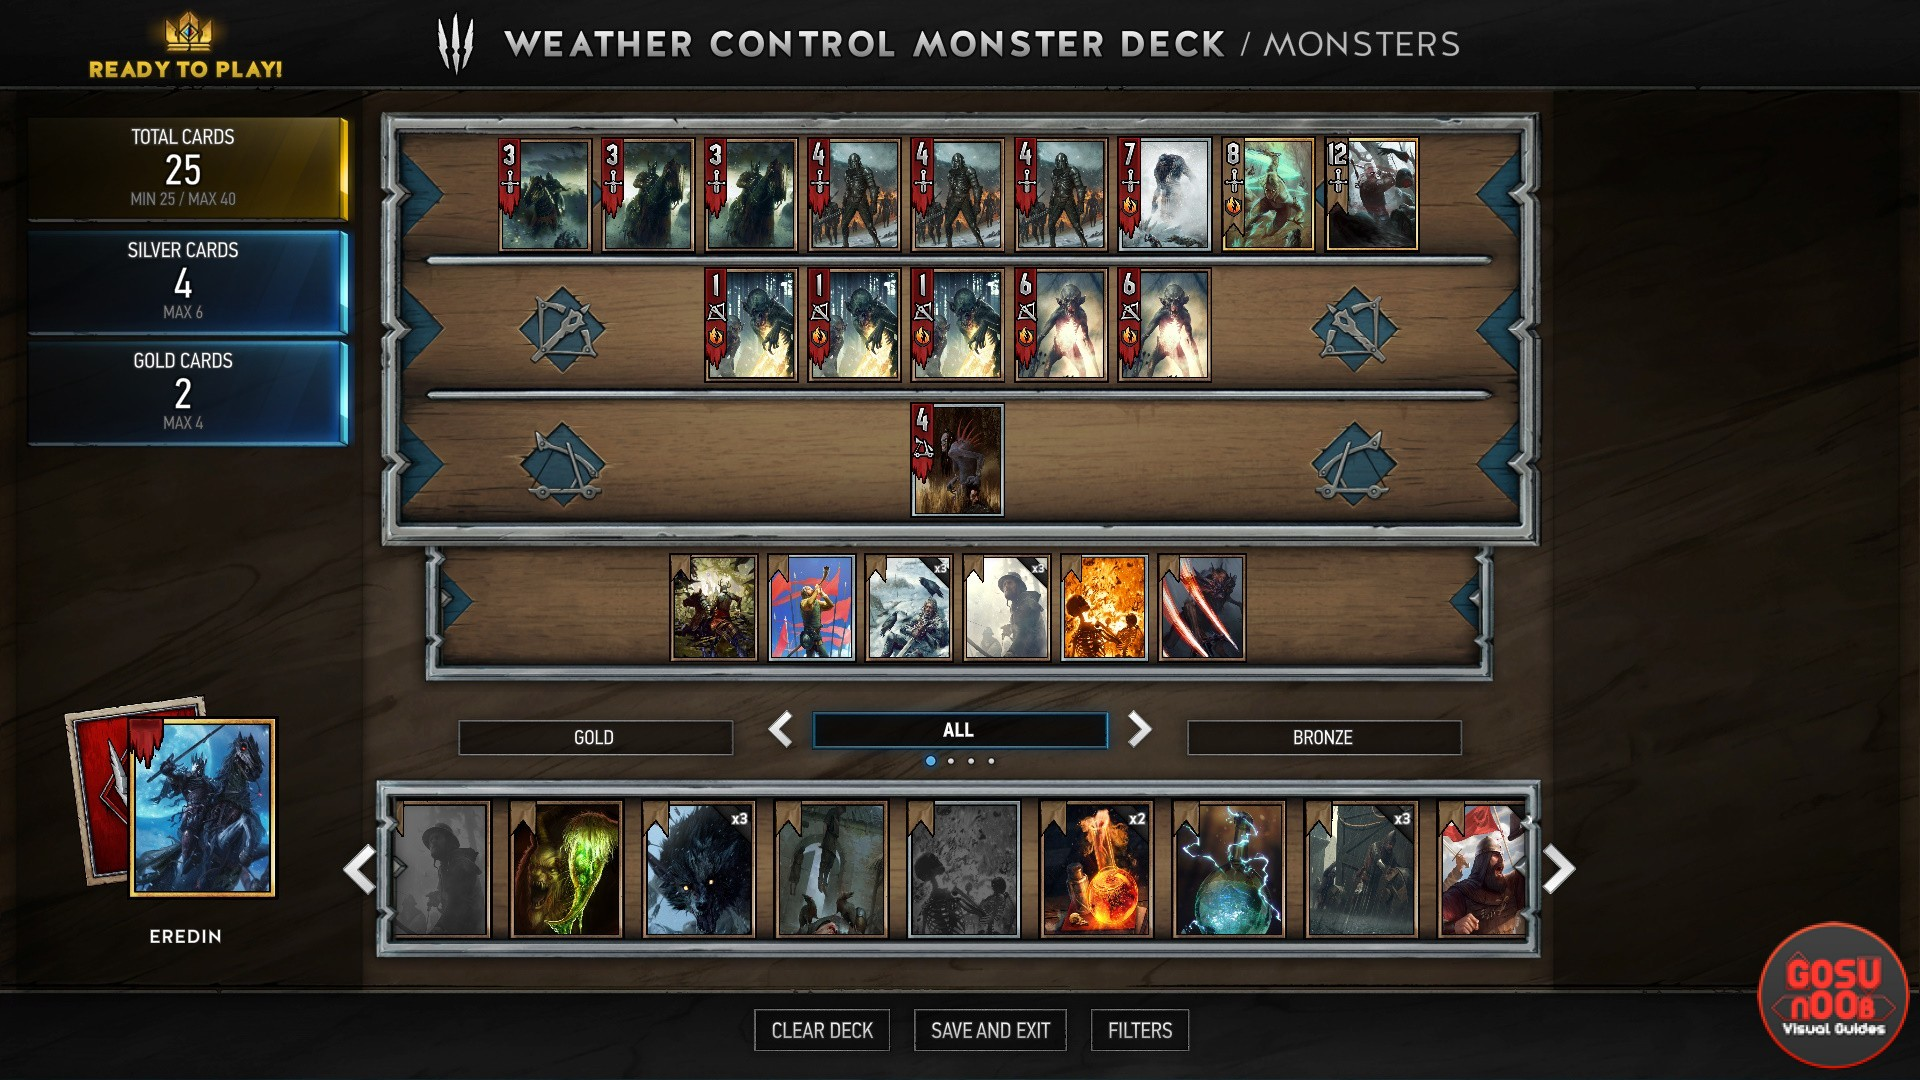 Monsters Weather Control Basic Deck Guide Gwent Gosunoob